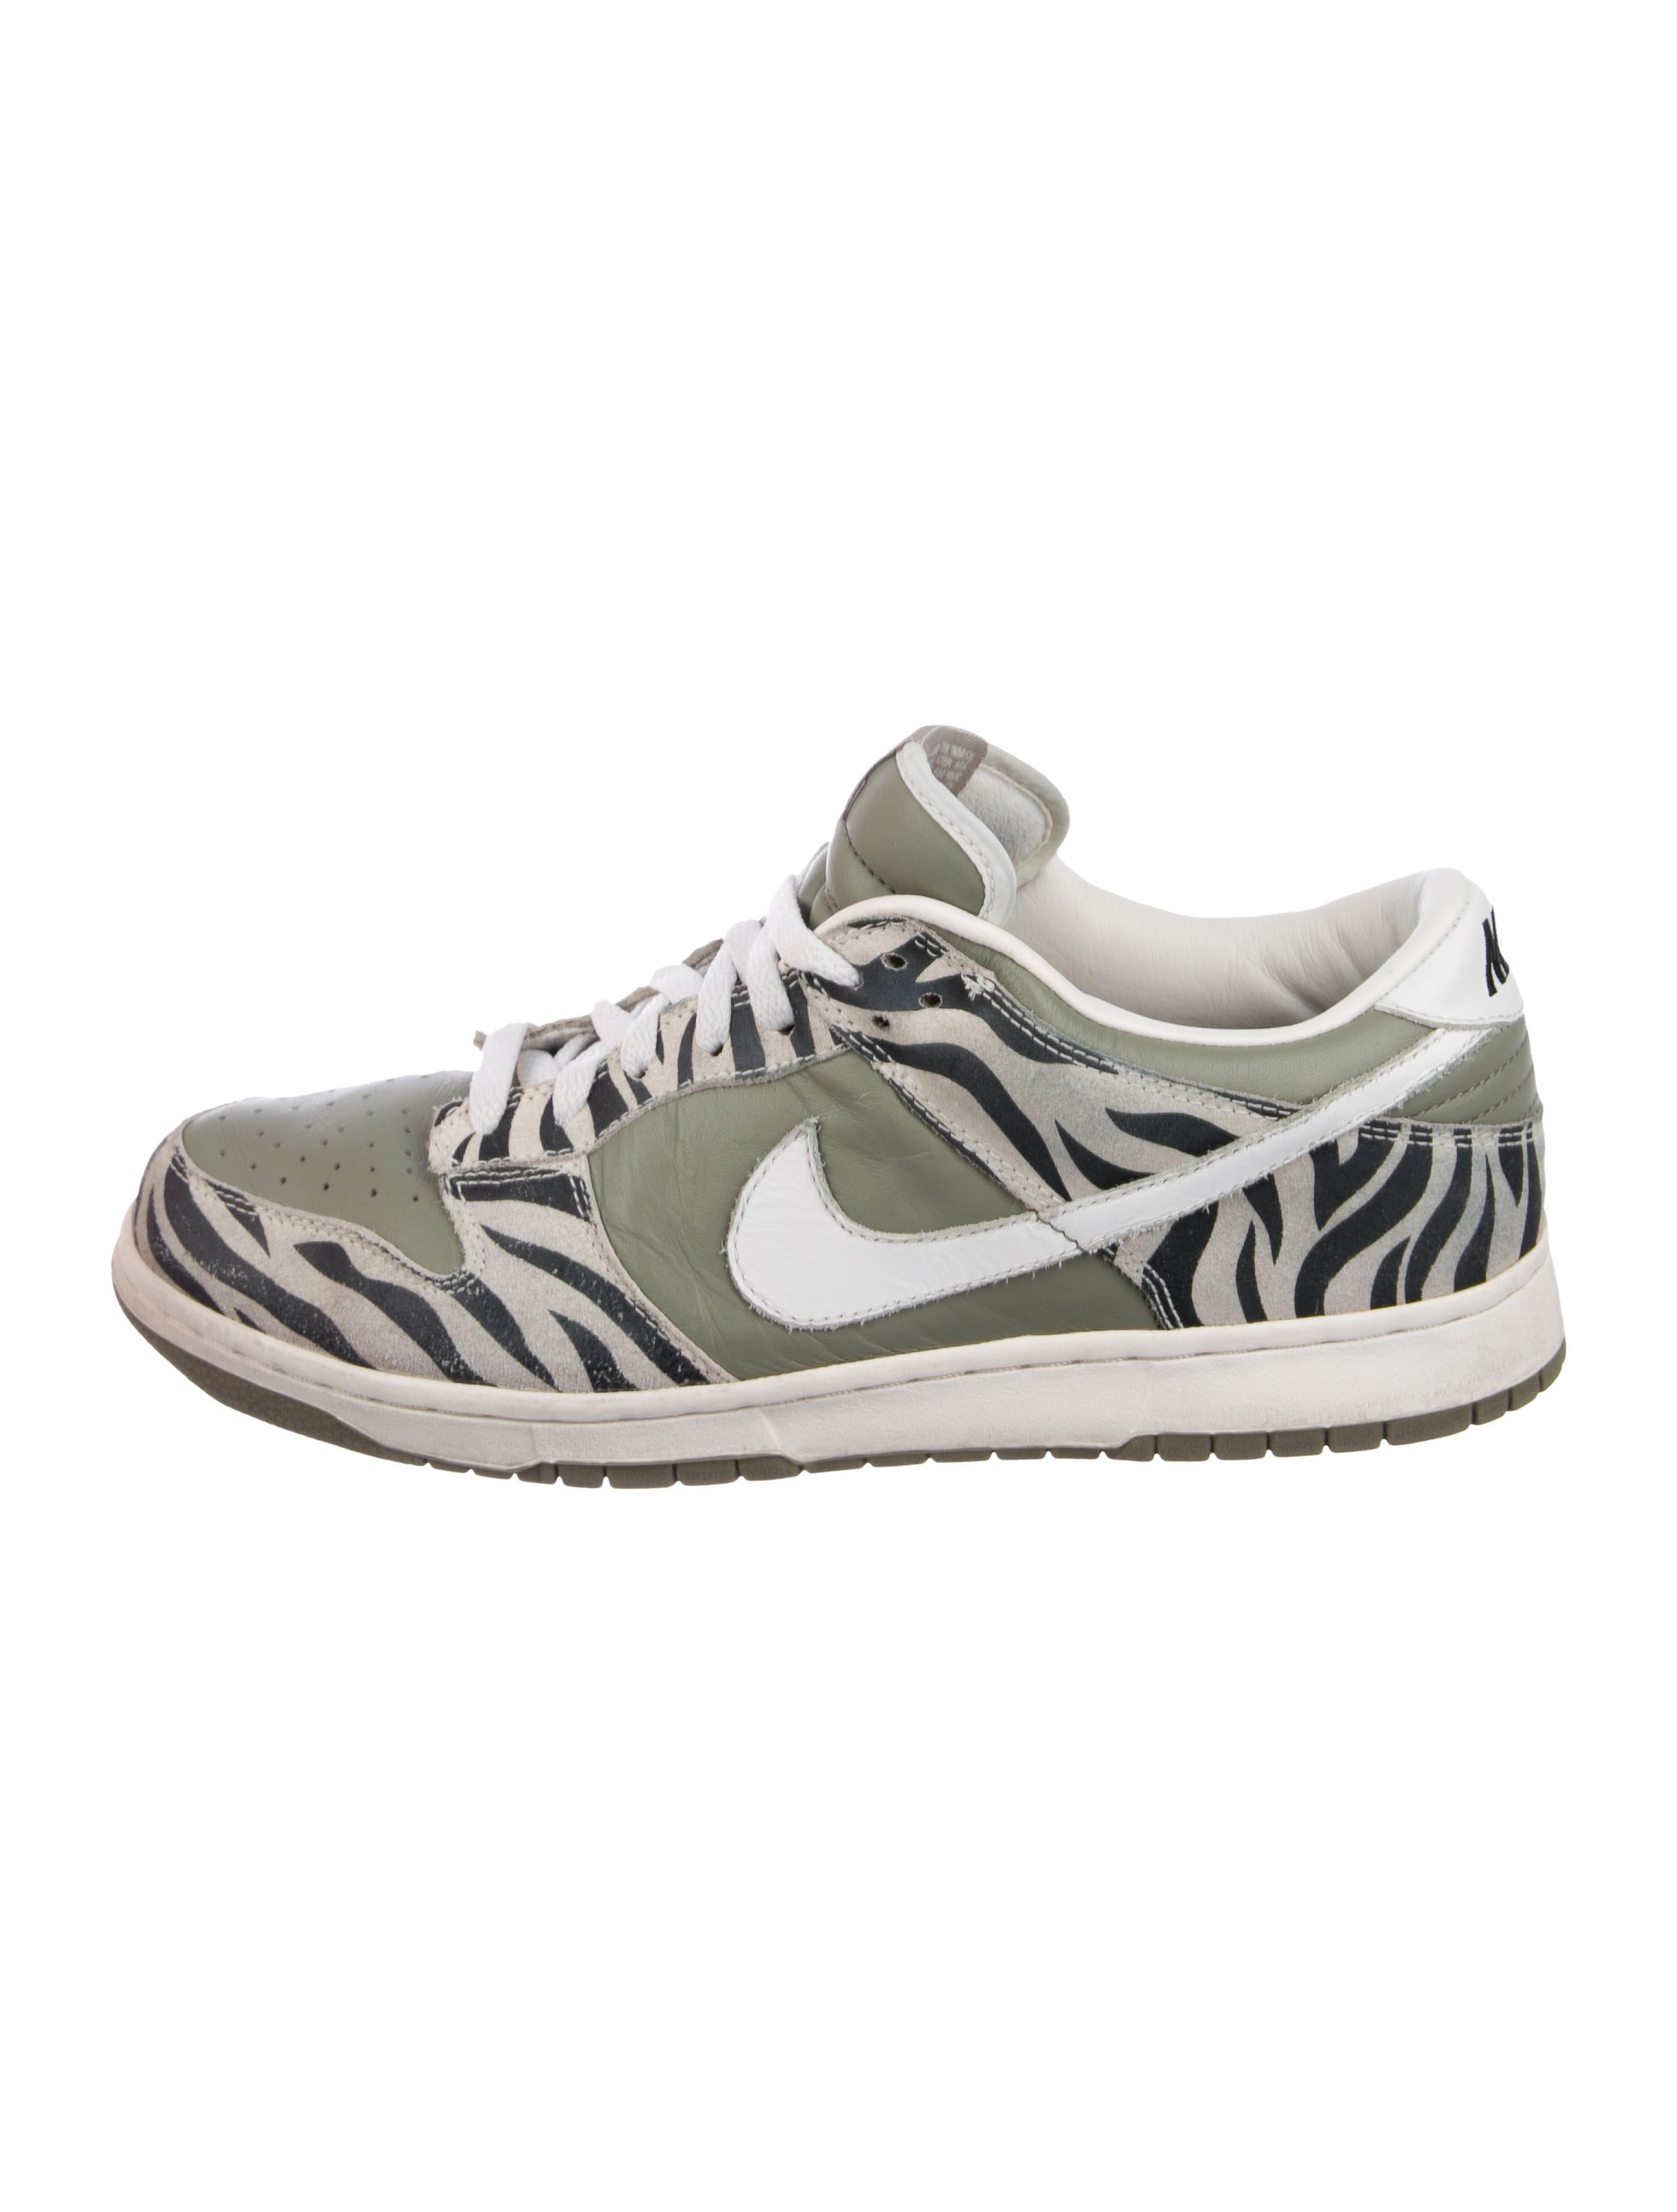 outlet store be868 d5bab Nike Dunk Low  Daktari  Sneakers - Shoes - WU232322   The RealReal